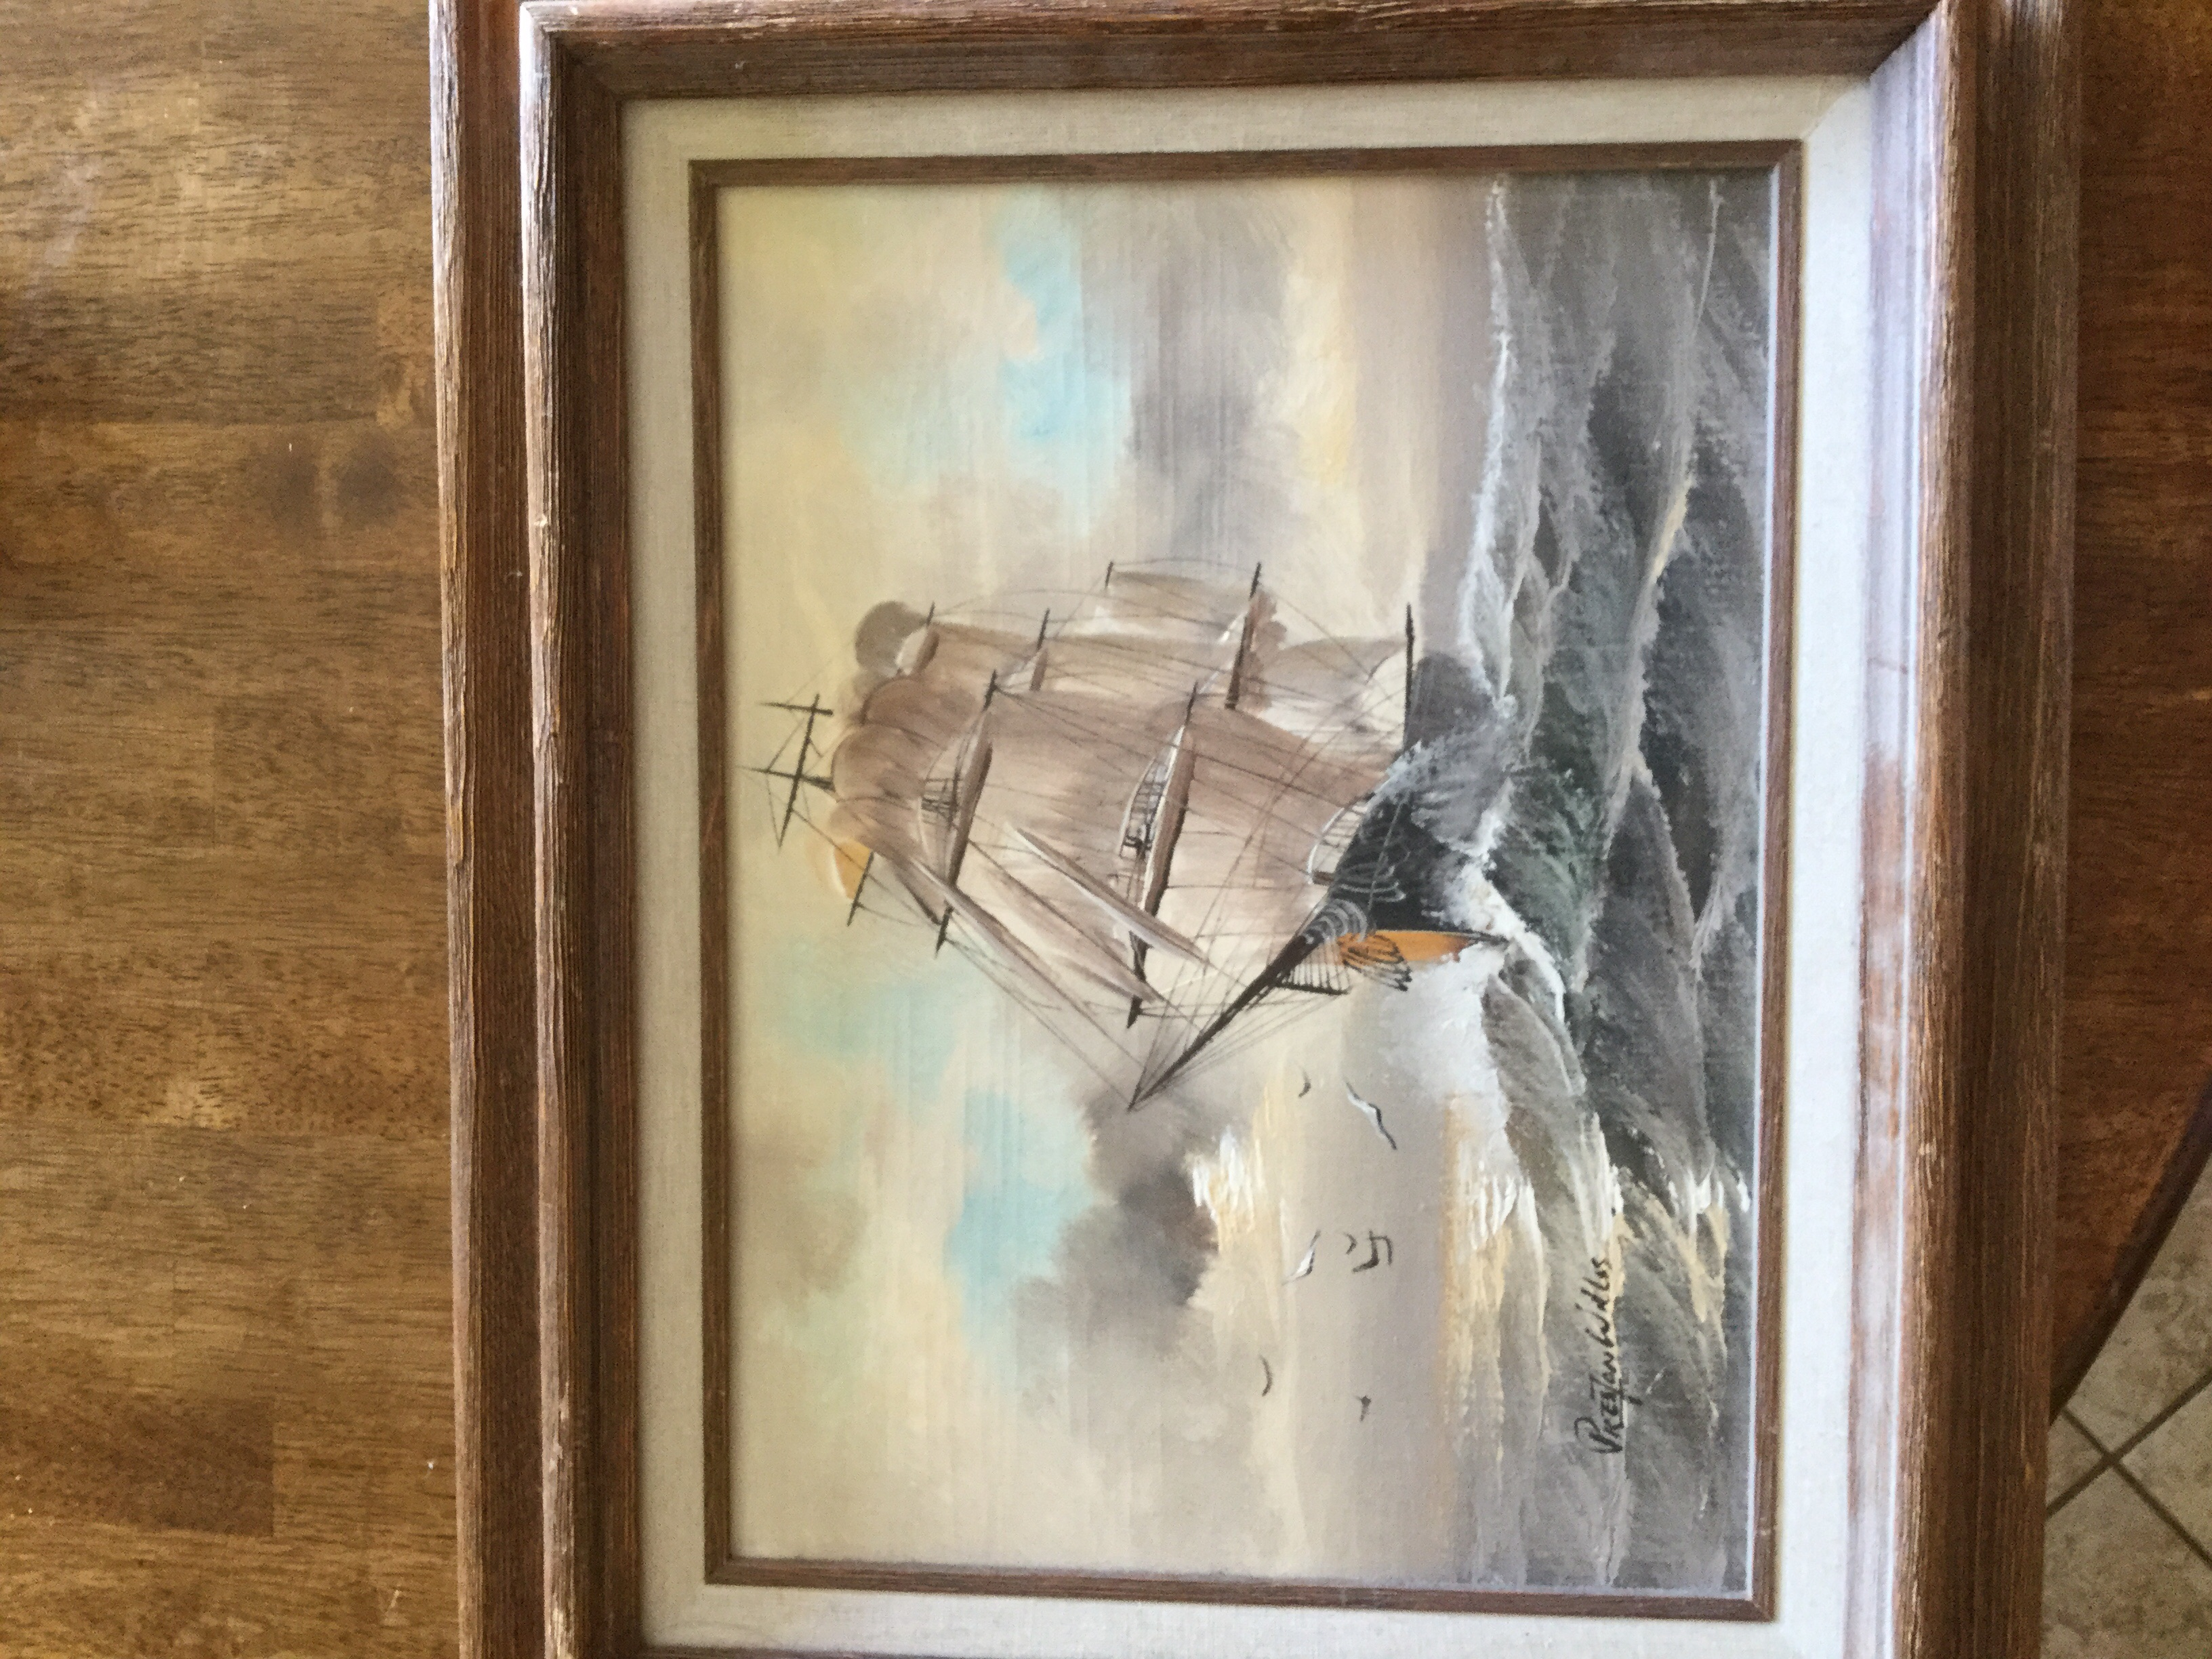 I Have A Preston Willis Oil Painting That I Received From My Dad On